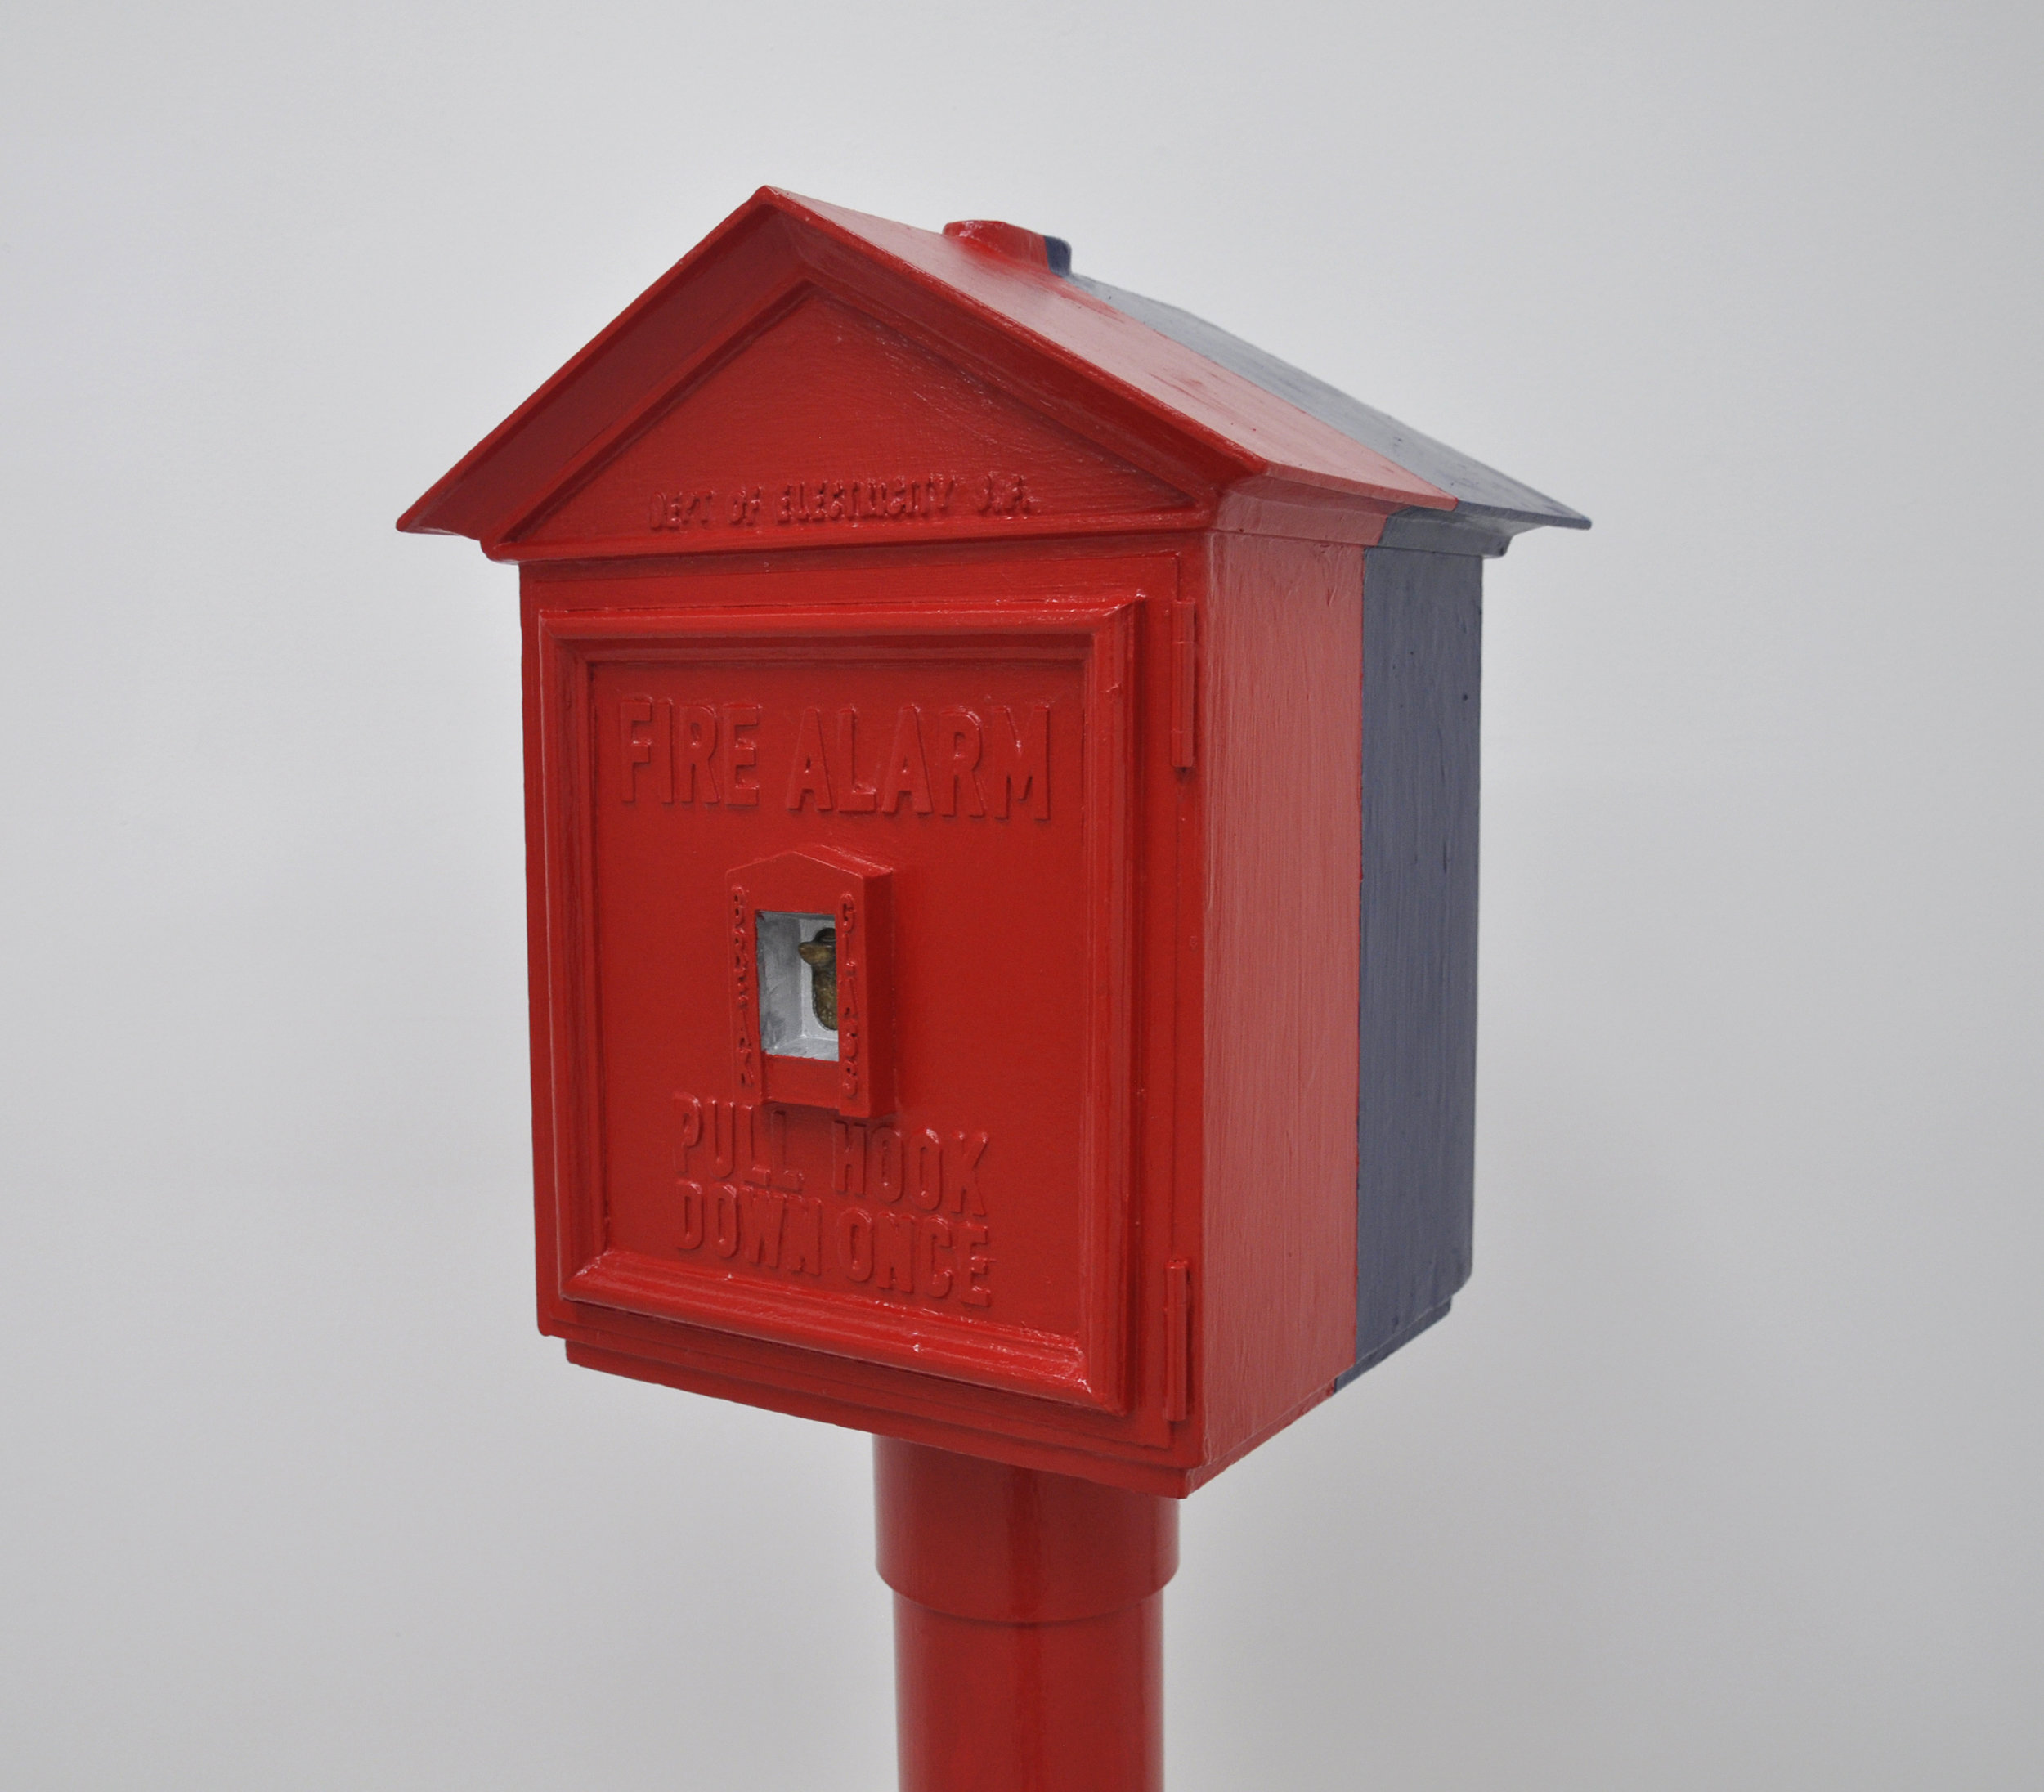 Malcolm Kenter, Fire / Police Box, 2019, Enamel on Wood, Foam, Plastic, Cement, Chewing Gum, 62.5 x 24.5 x 27in